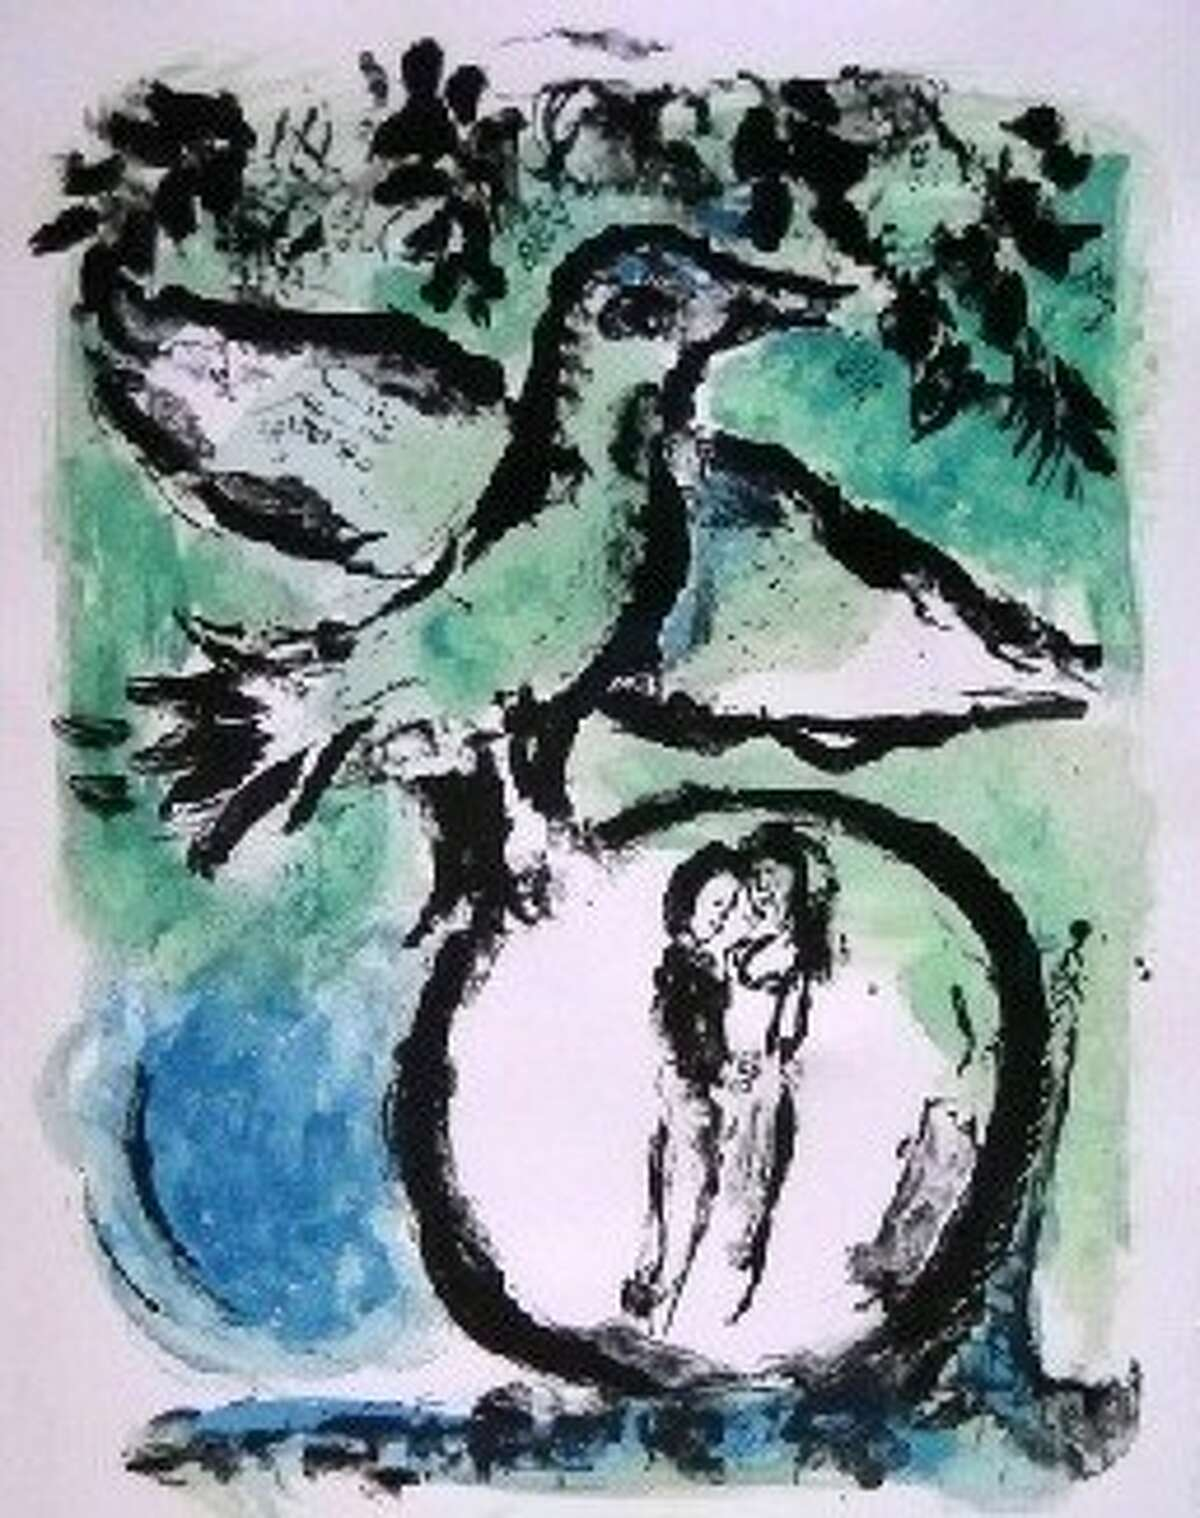 """""""Green Bird,"""" by Marc Chagall is one of the piece of art up for auction by the U.S. Marshals Service. Also up for grabs , amond others, are a linocut by Pablo Picasso, """"Le Homme Endormi"""" by Henri Matisse, and a sheet music cover by Henri Toulouse-Lautrec."""